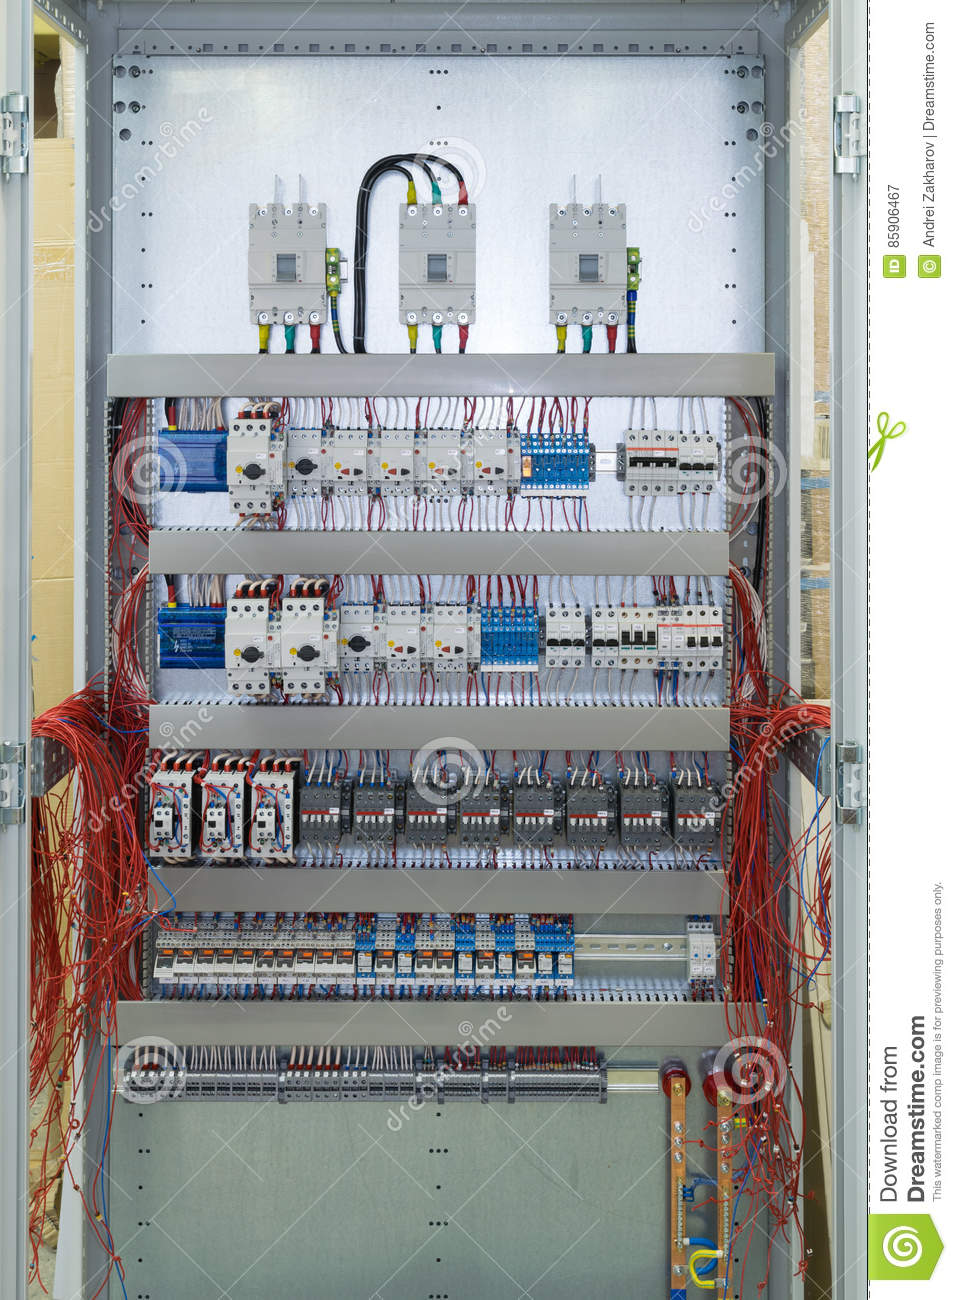 Connecting Cables With Cable Lugs To Circuit Breakers In The ...